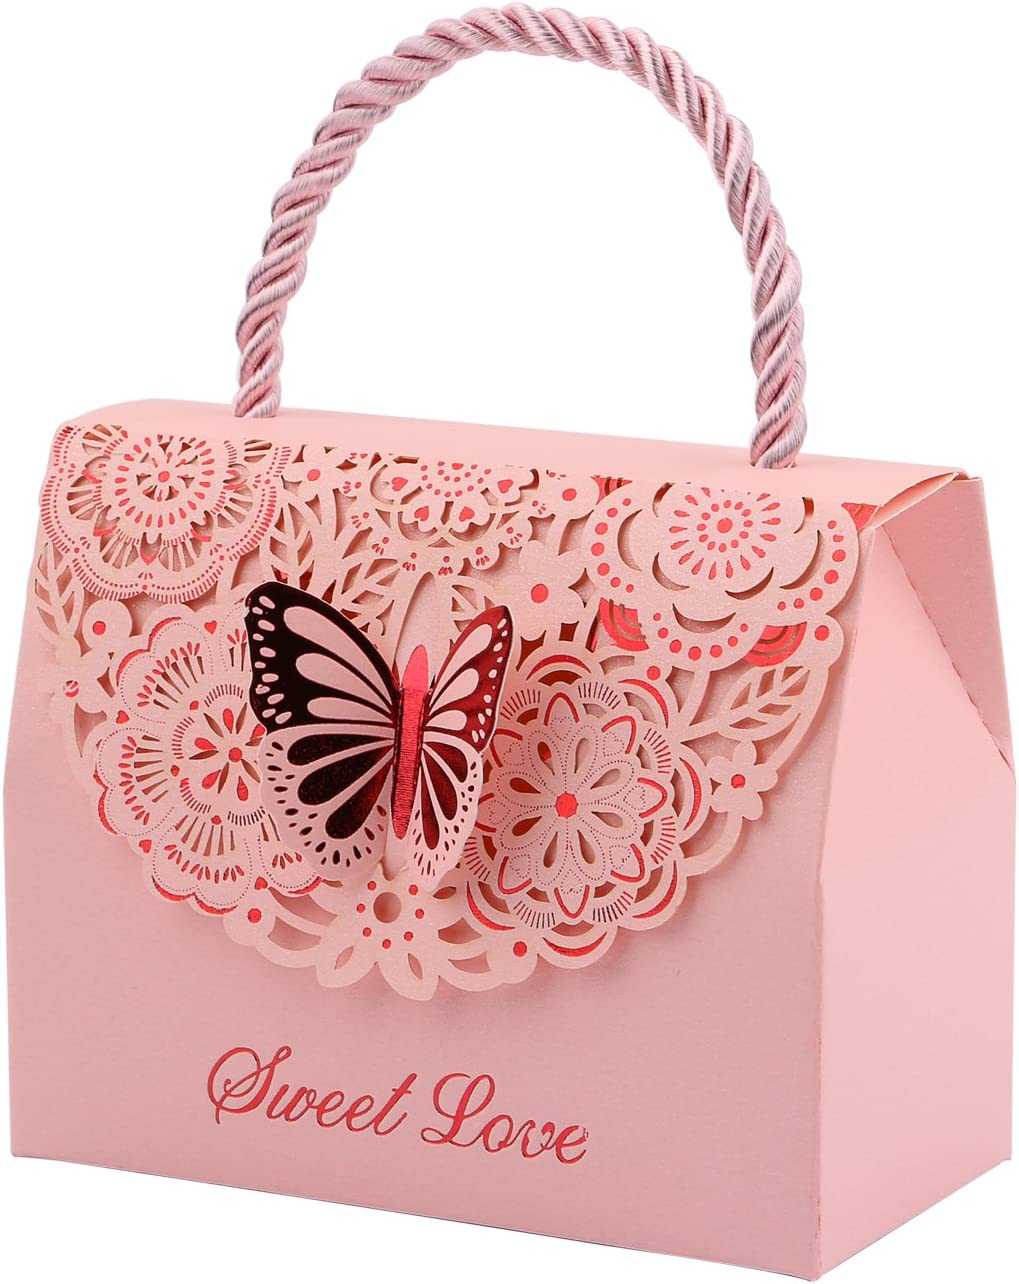 Pink DriewWedding Party Favor Bags Paper for Anniversary 20pcs Wedding Decorative Boxes Gift Bags Butterflies with Handle 4.3x2.2x3.5 Birthday Parties Bridal Showers Baby Shower